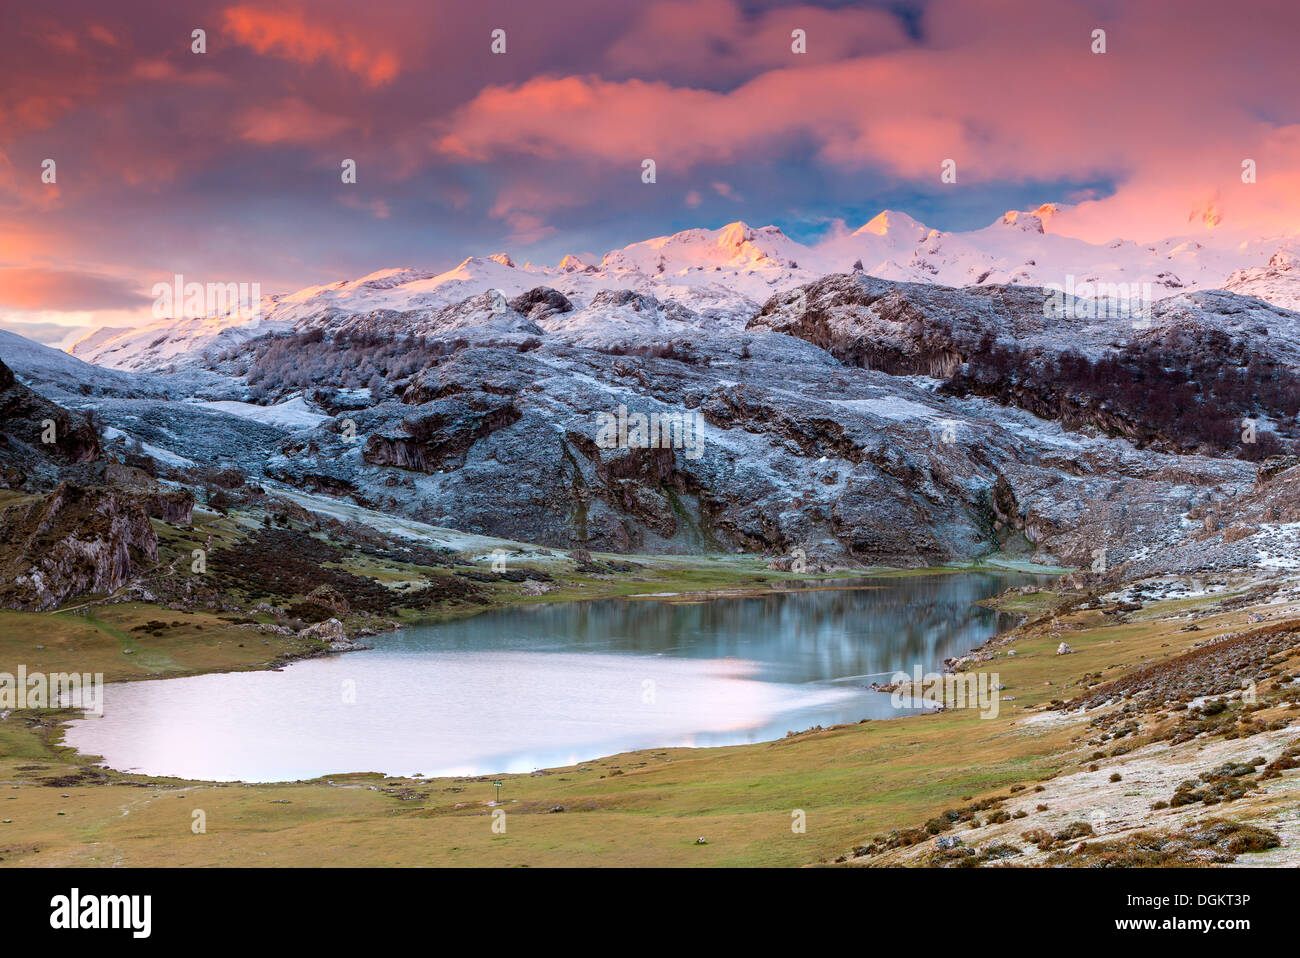 A view over Lake Ercina in the Picos de Europa National Park. - Stock Image